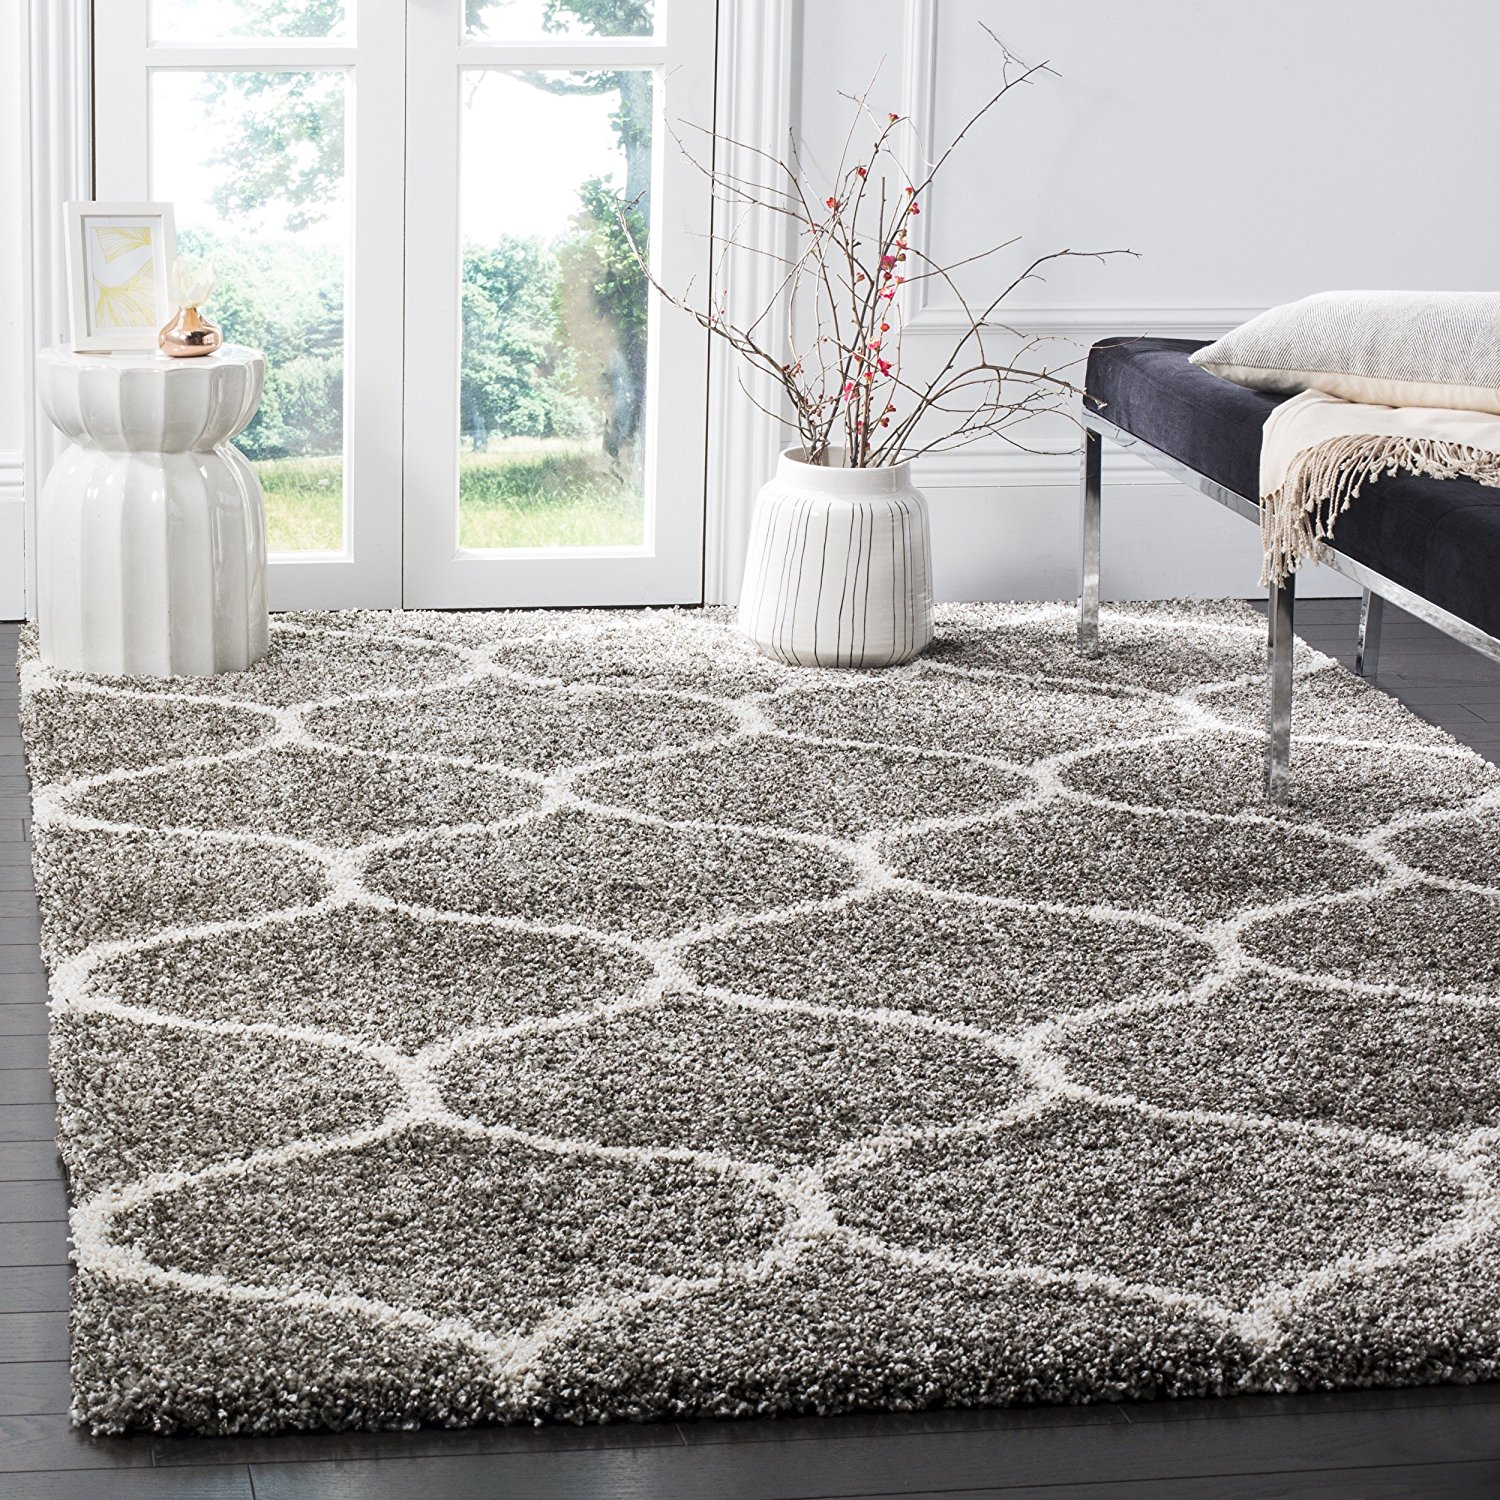 Hudson Shag Area Rug by Safavieh